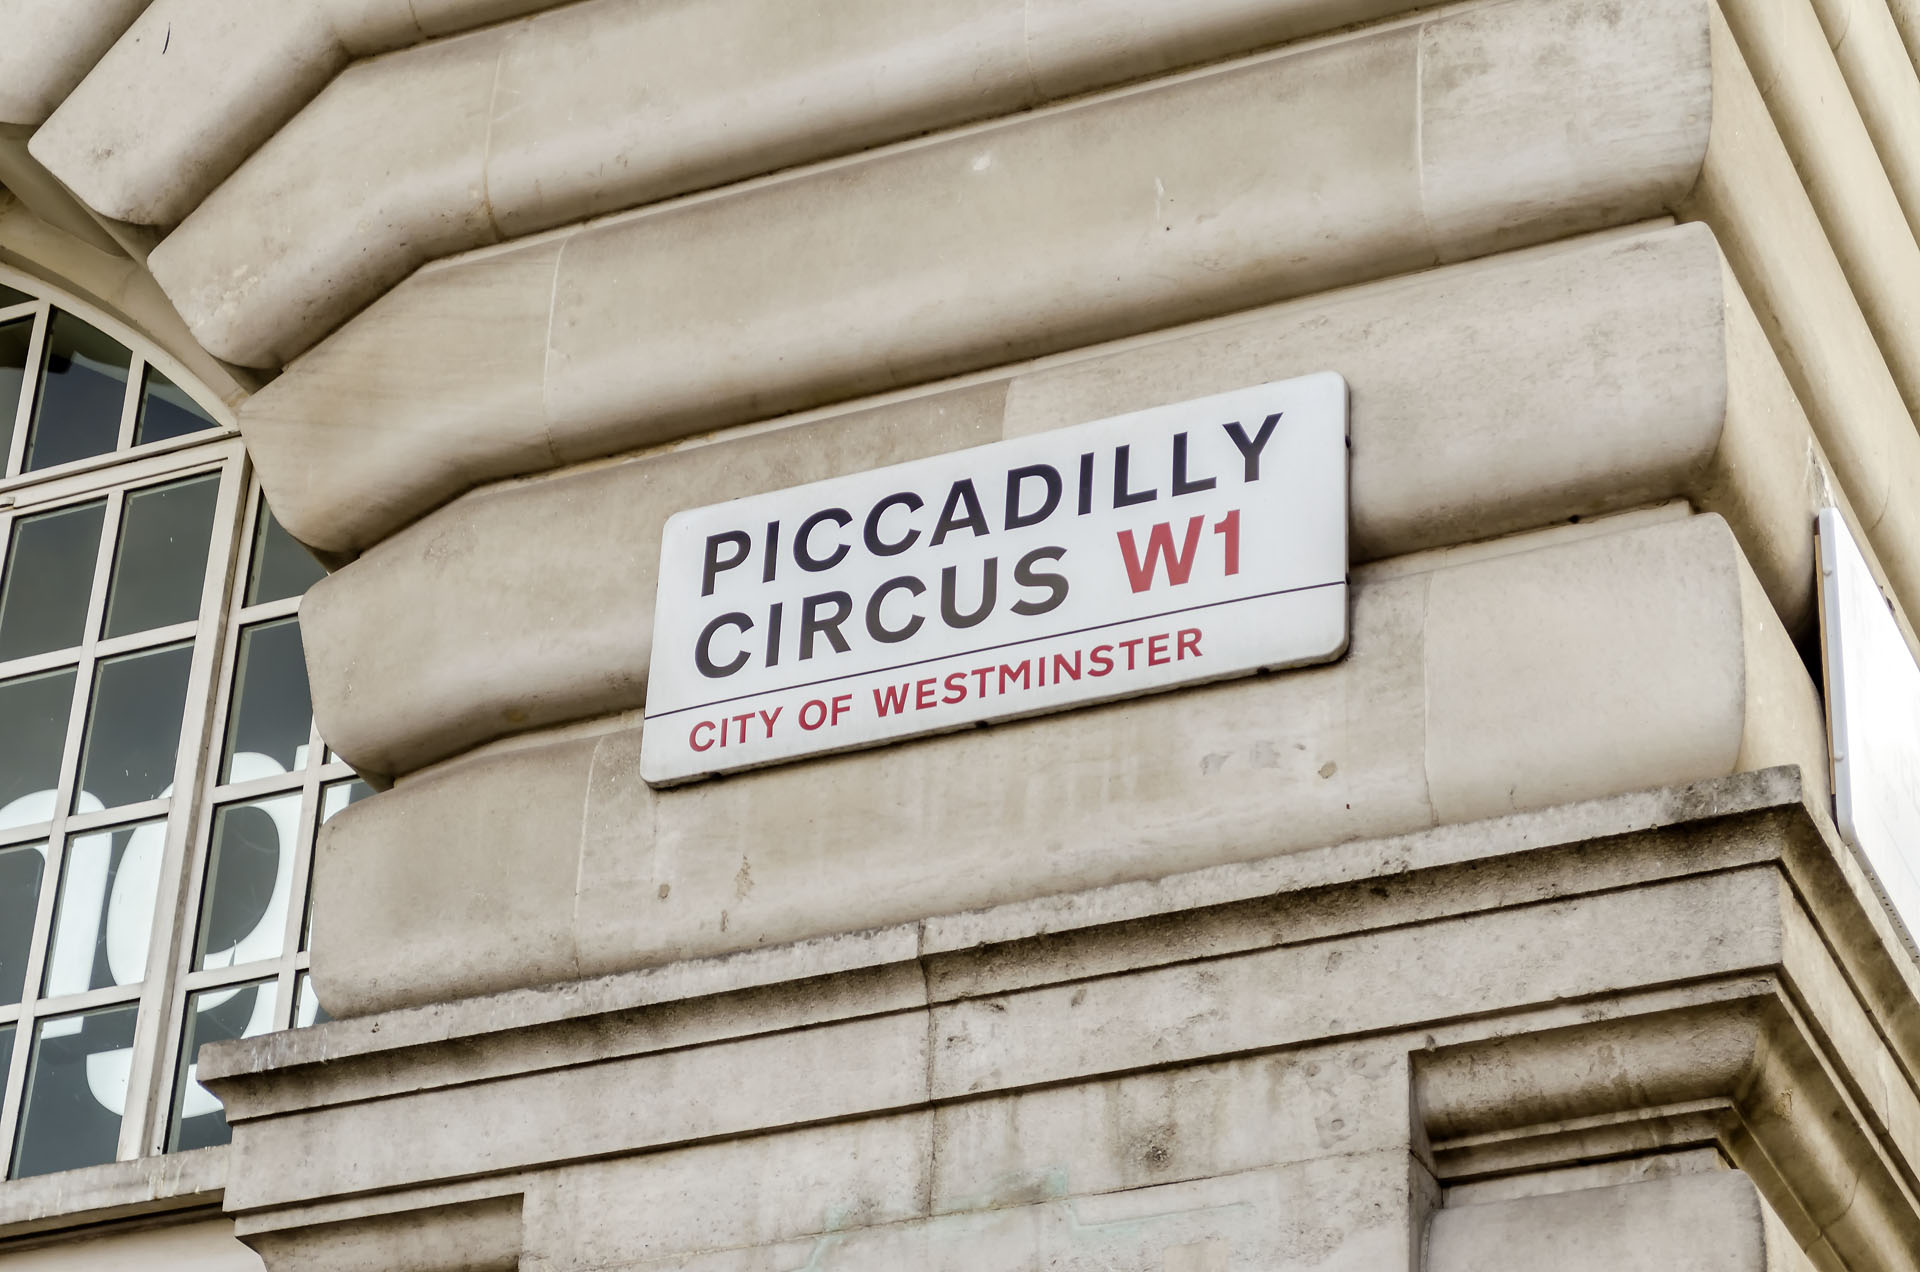 Piccadilly Circus street sign, London, UK